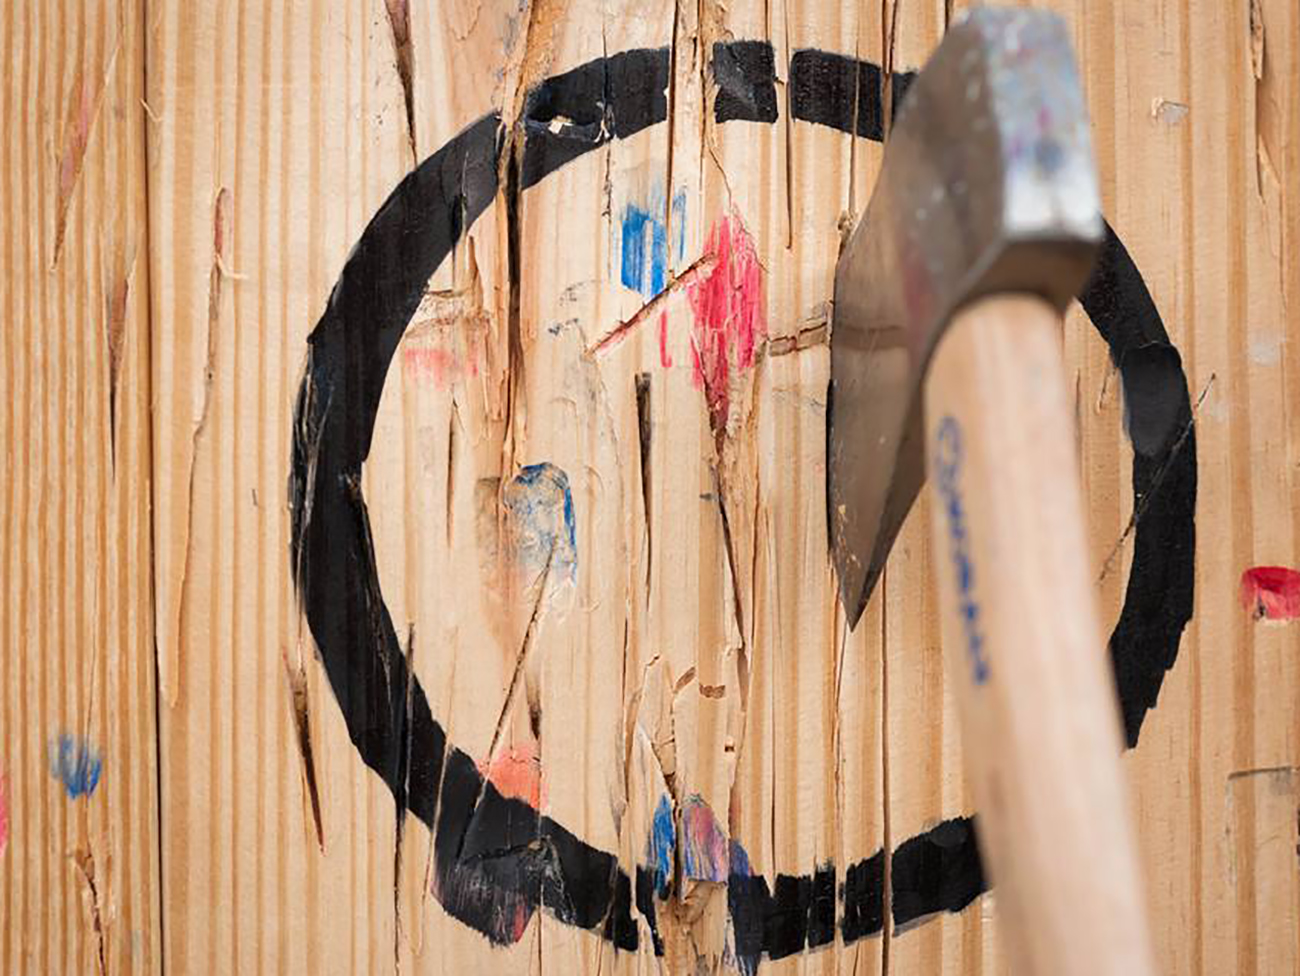 Into axe-throwing? You will soon be able to try it in Belmont this fall